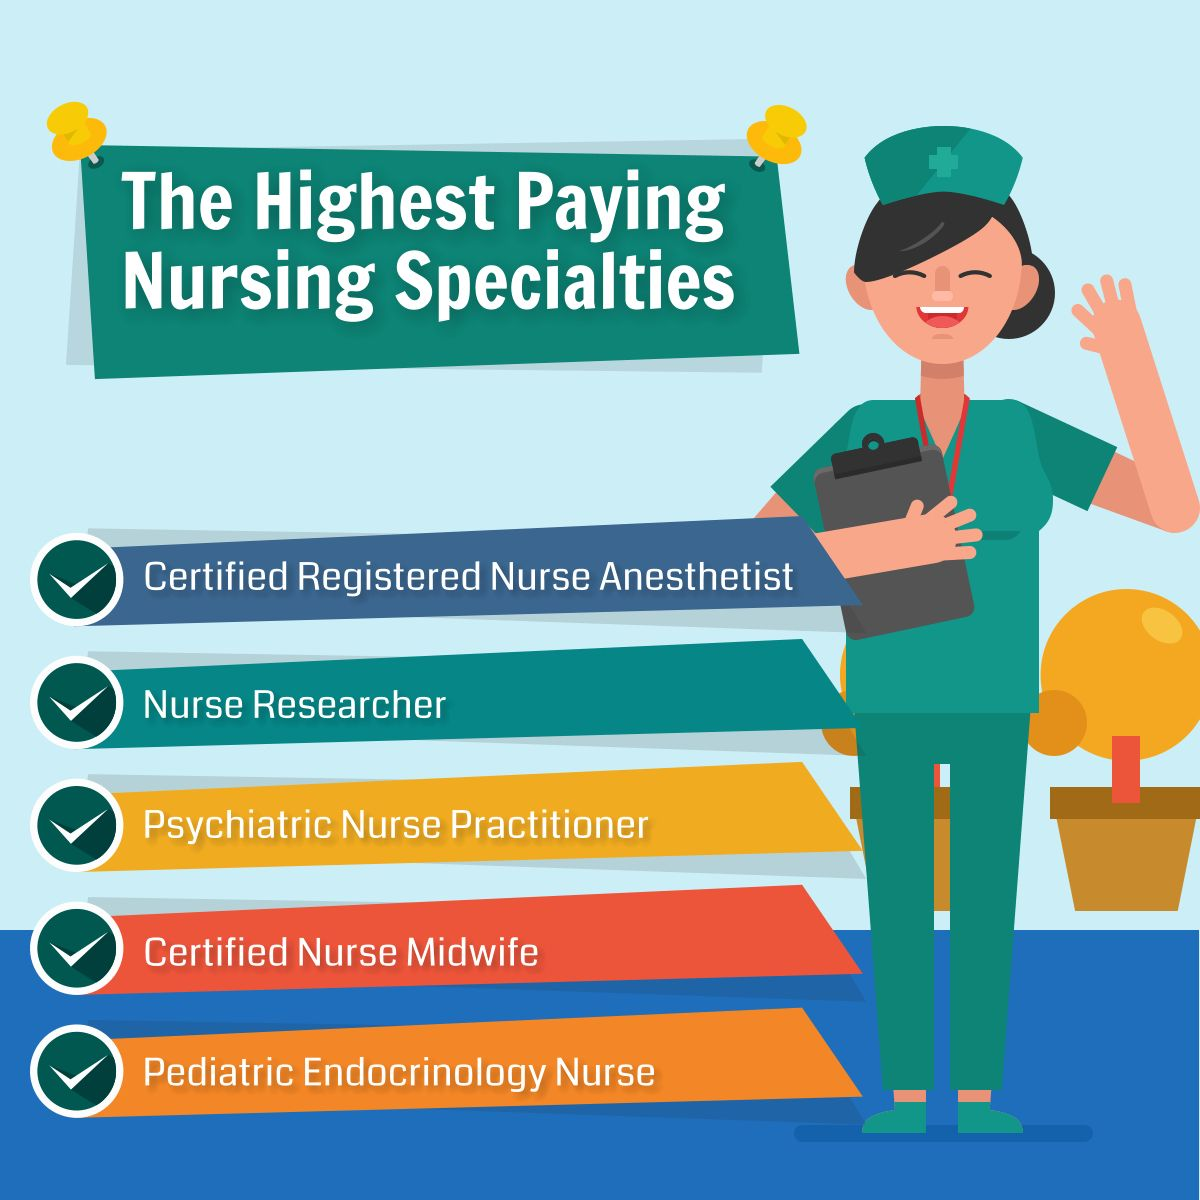 The highest paying nursing specialties